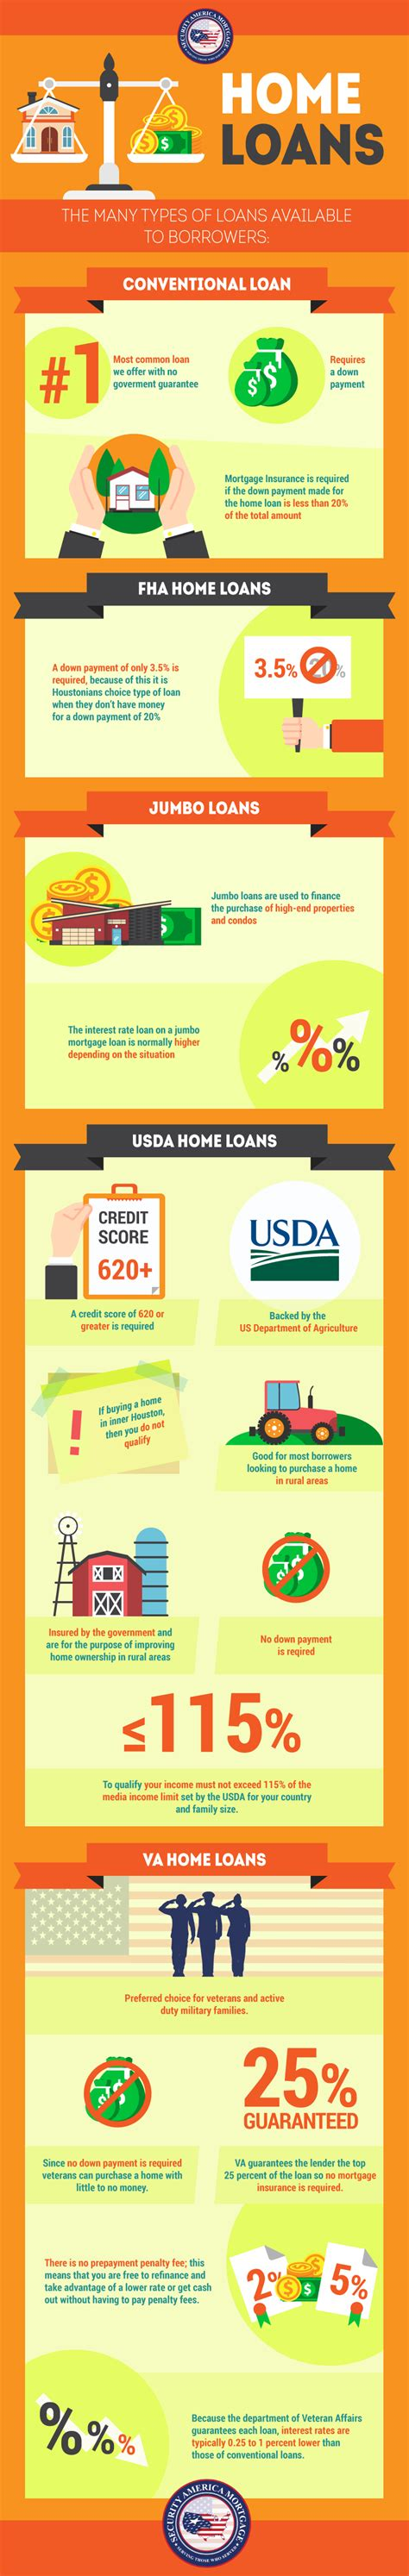 va house loans va house loan calculator non va home loan options infographic